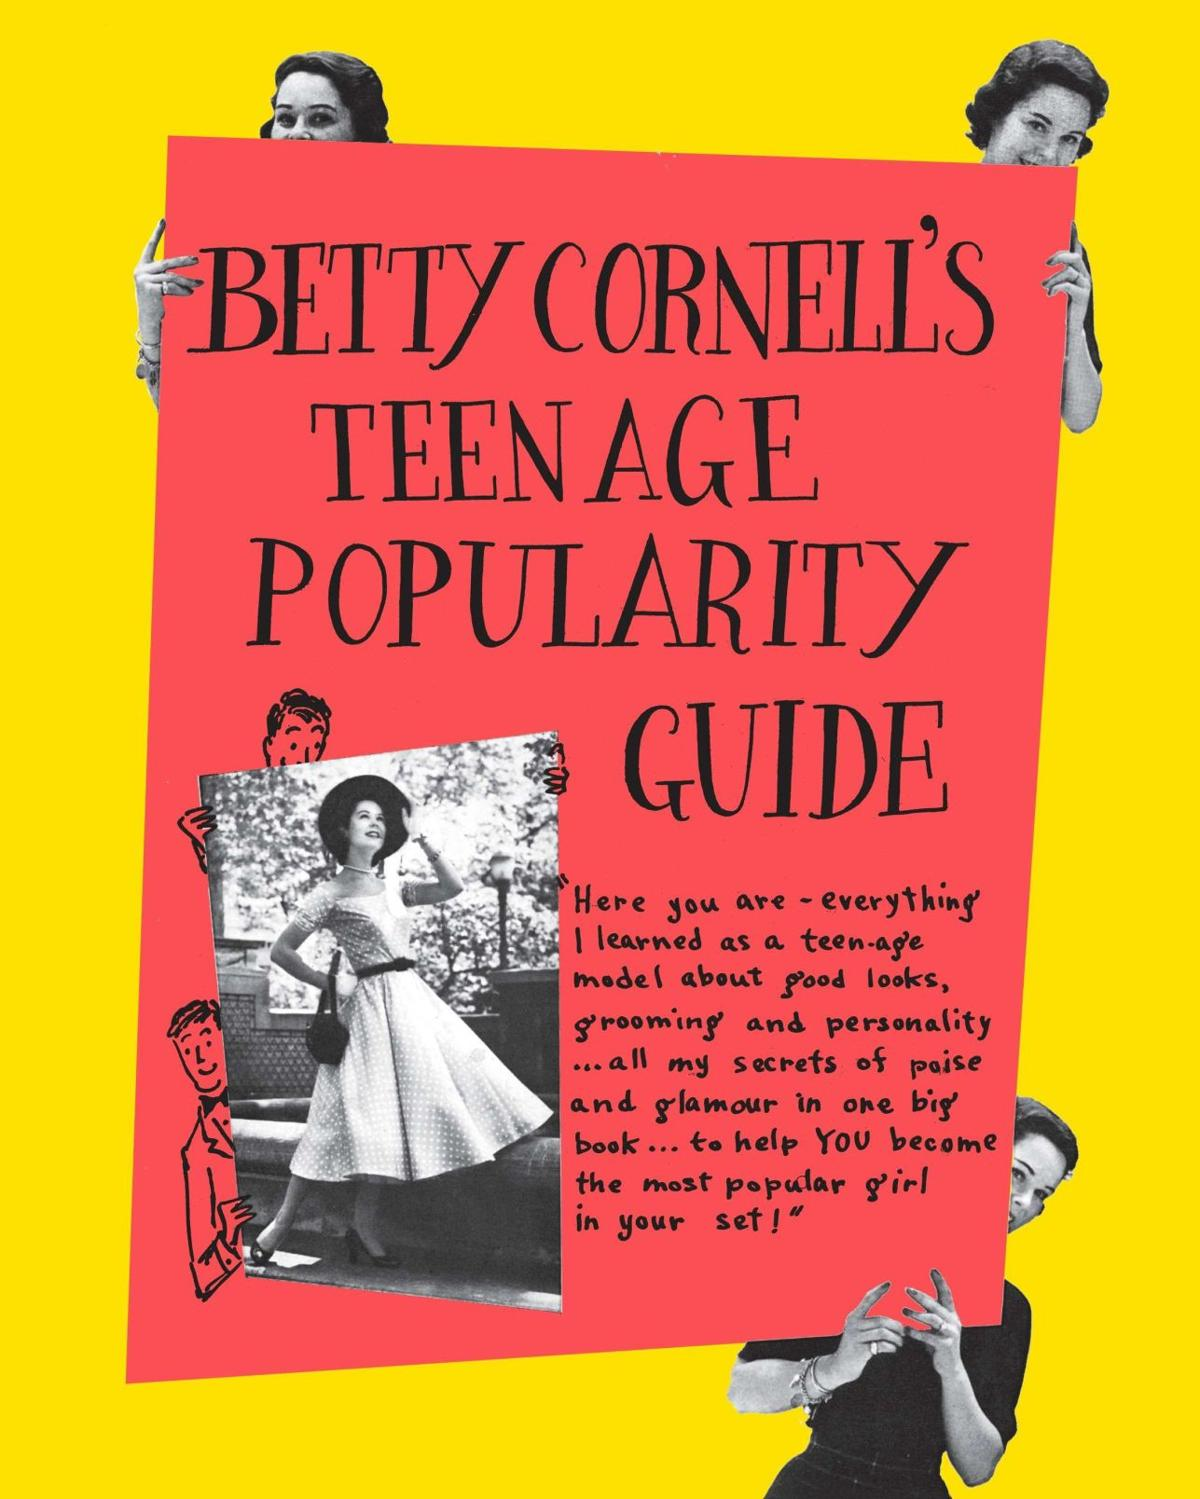 Teenager finds meaning in 1950s popularity guide